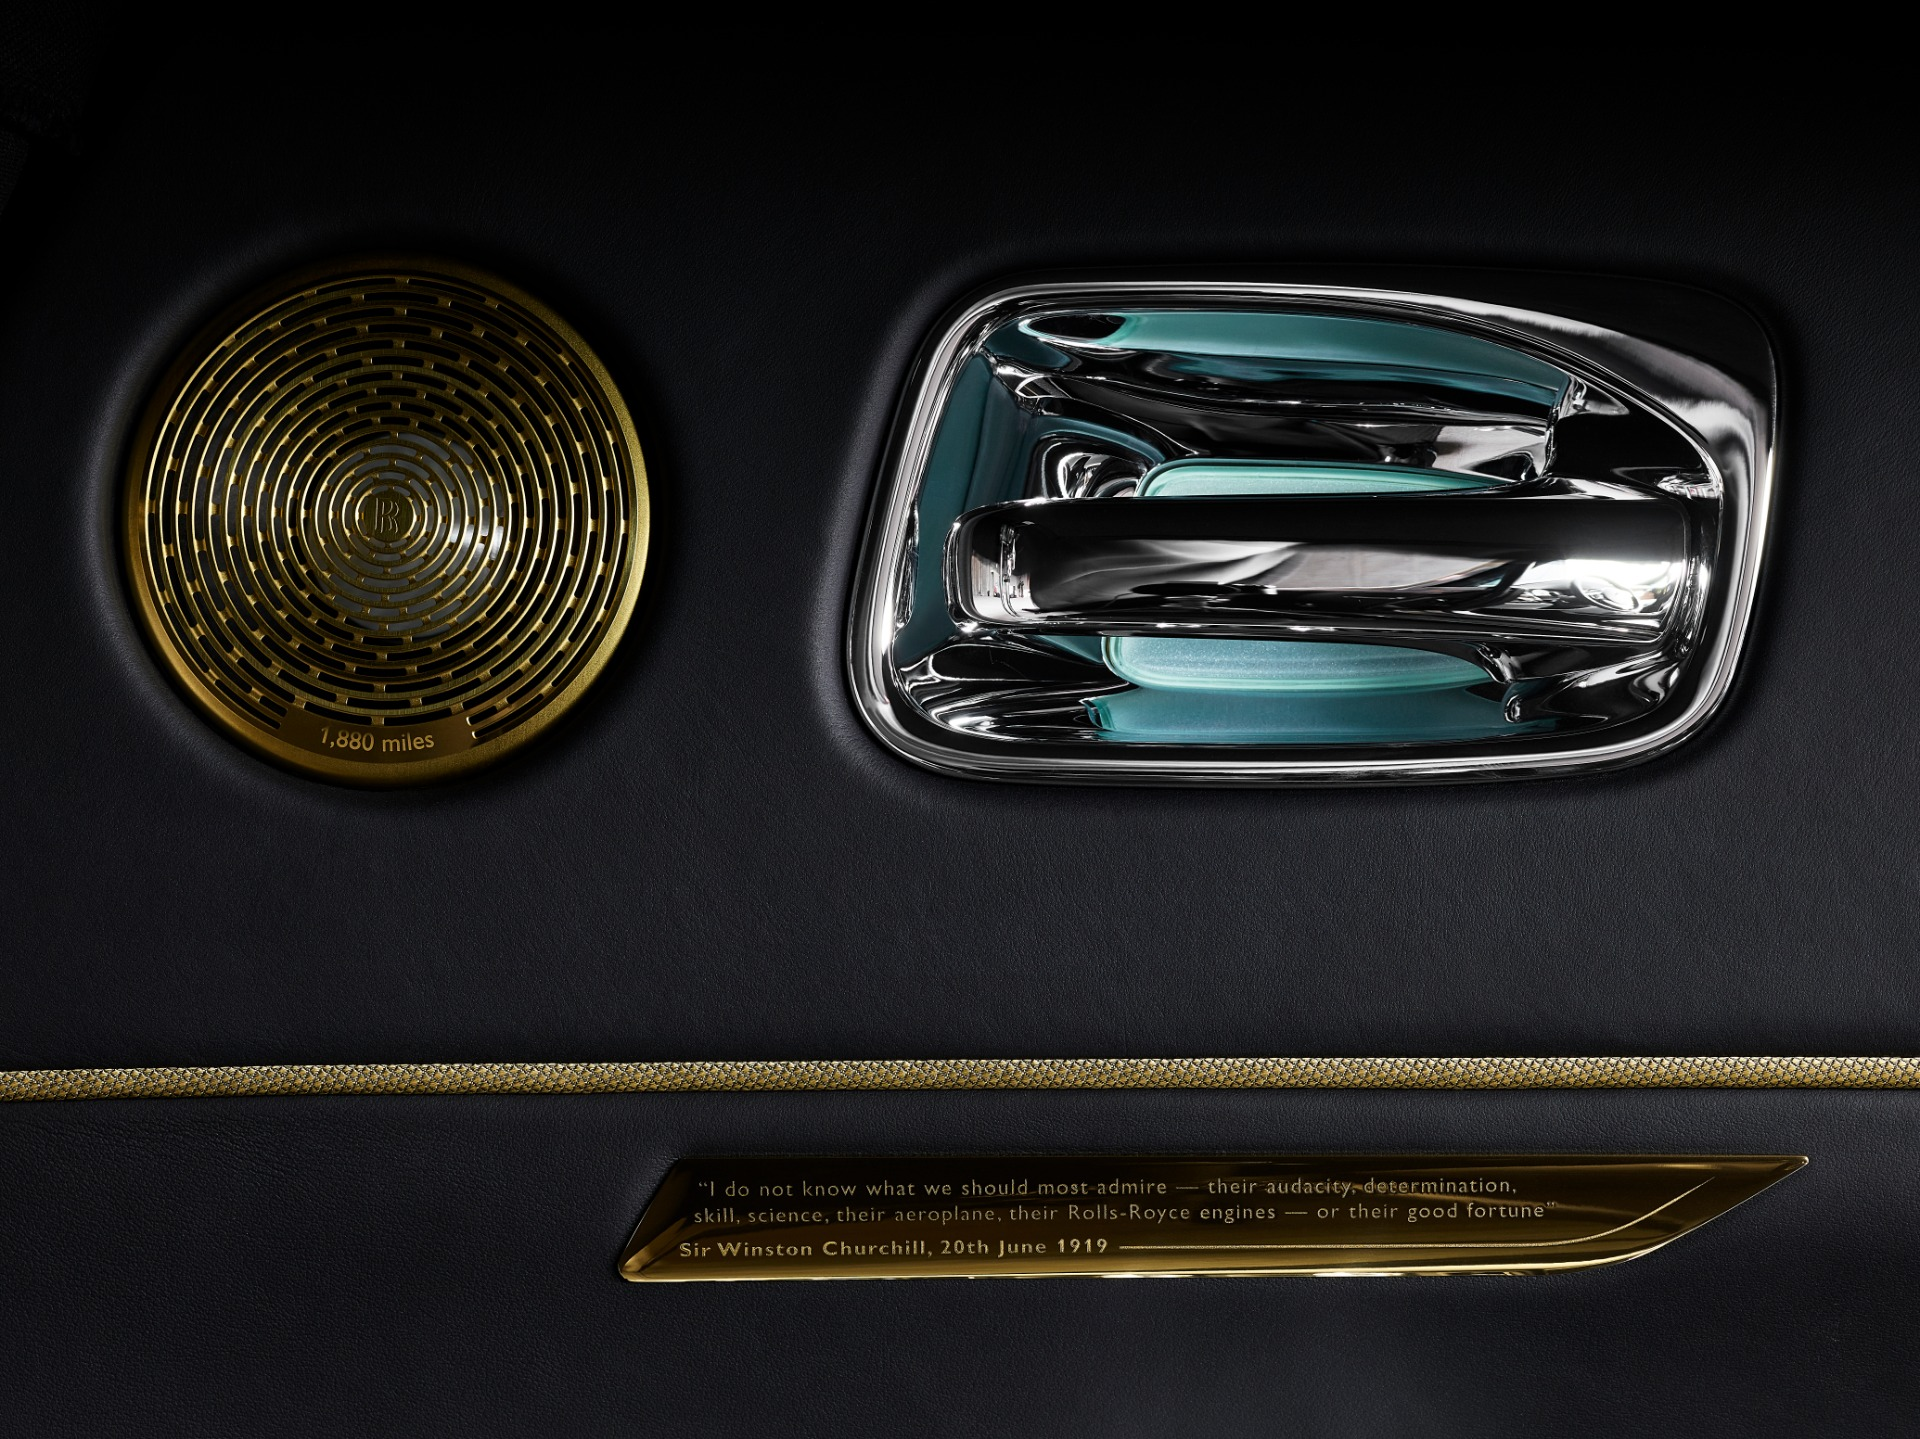 New 2020 Rolls Royce Wraith Eagle